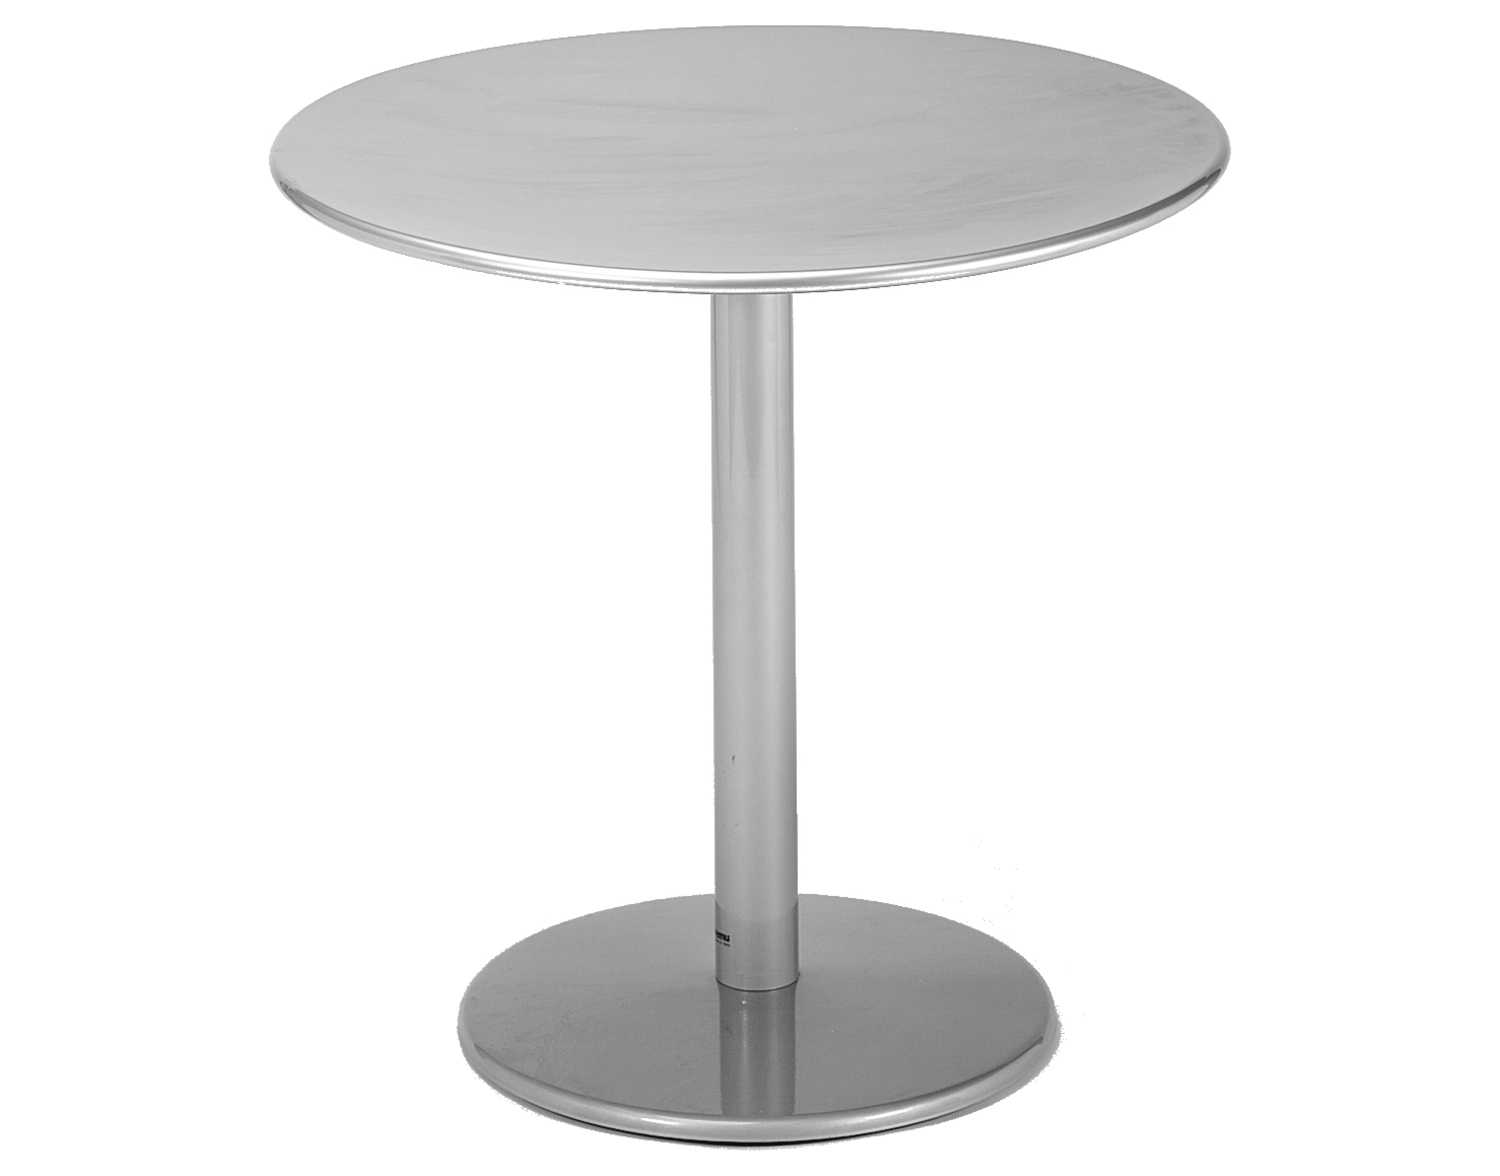 EMU Bistro Steel 24 Round Bistro Table